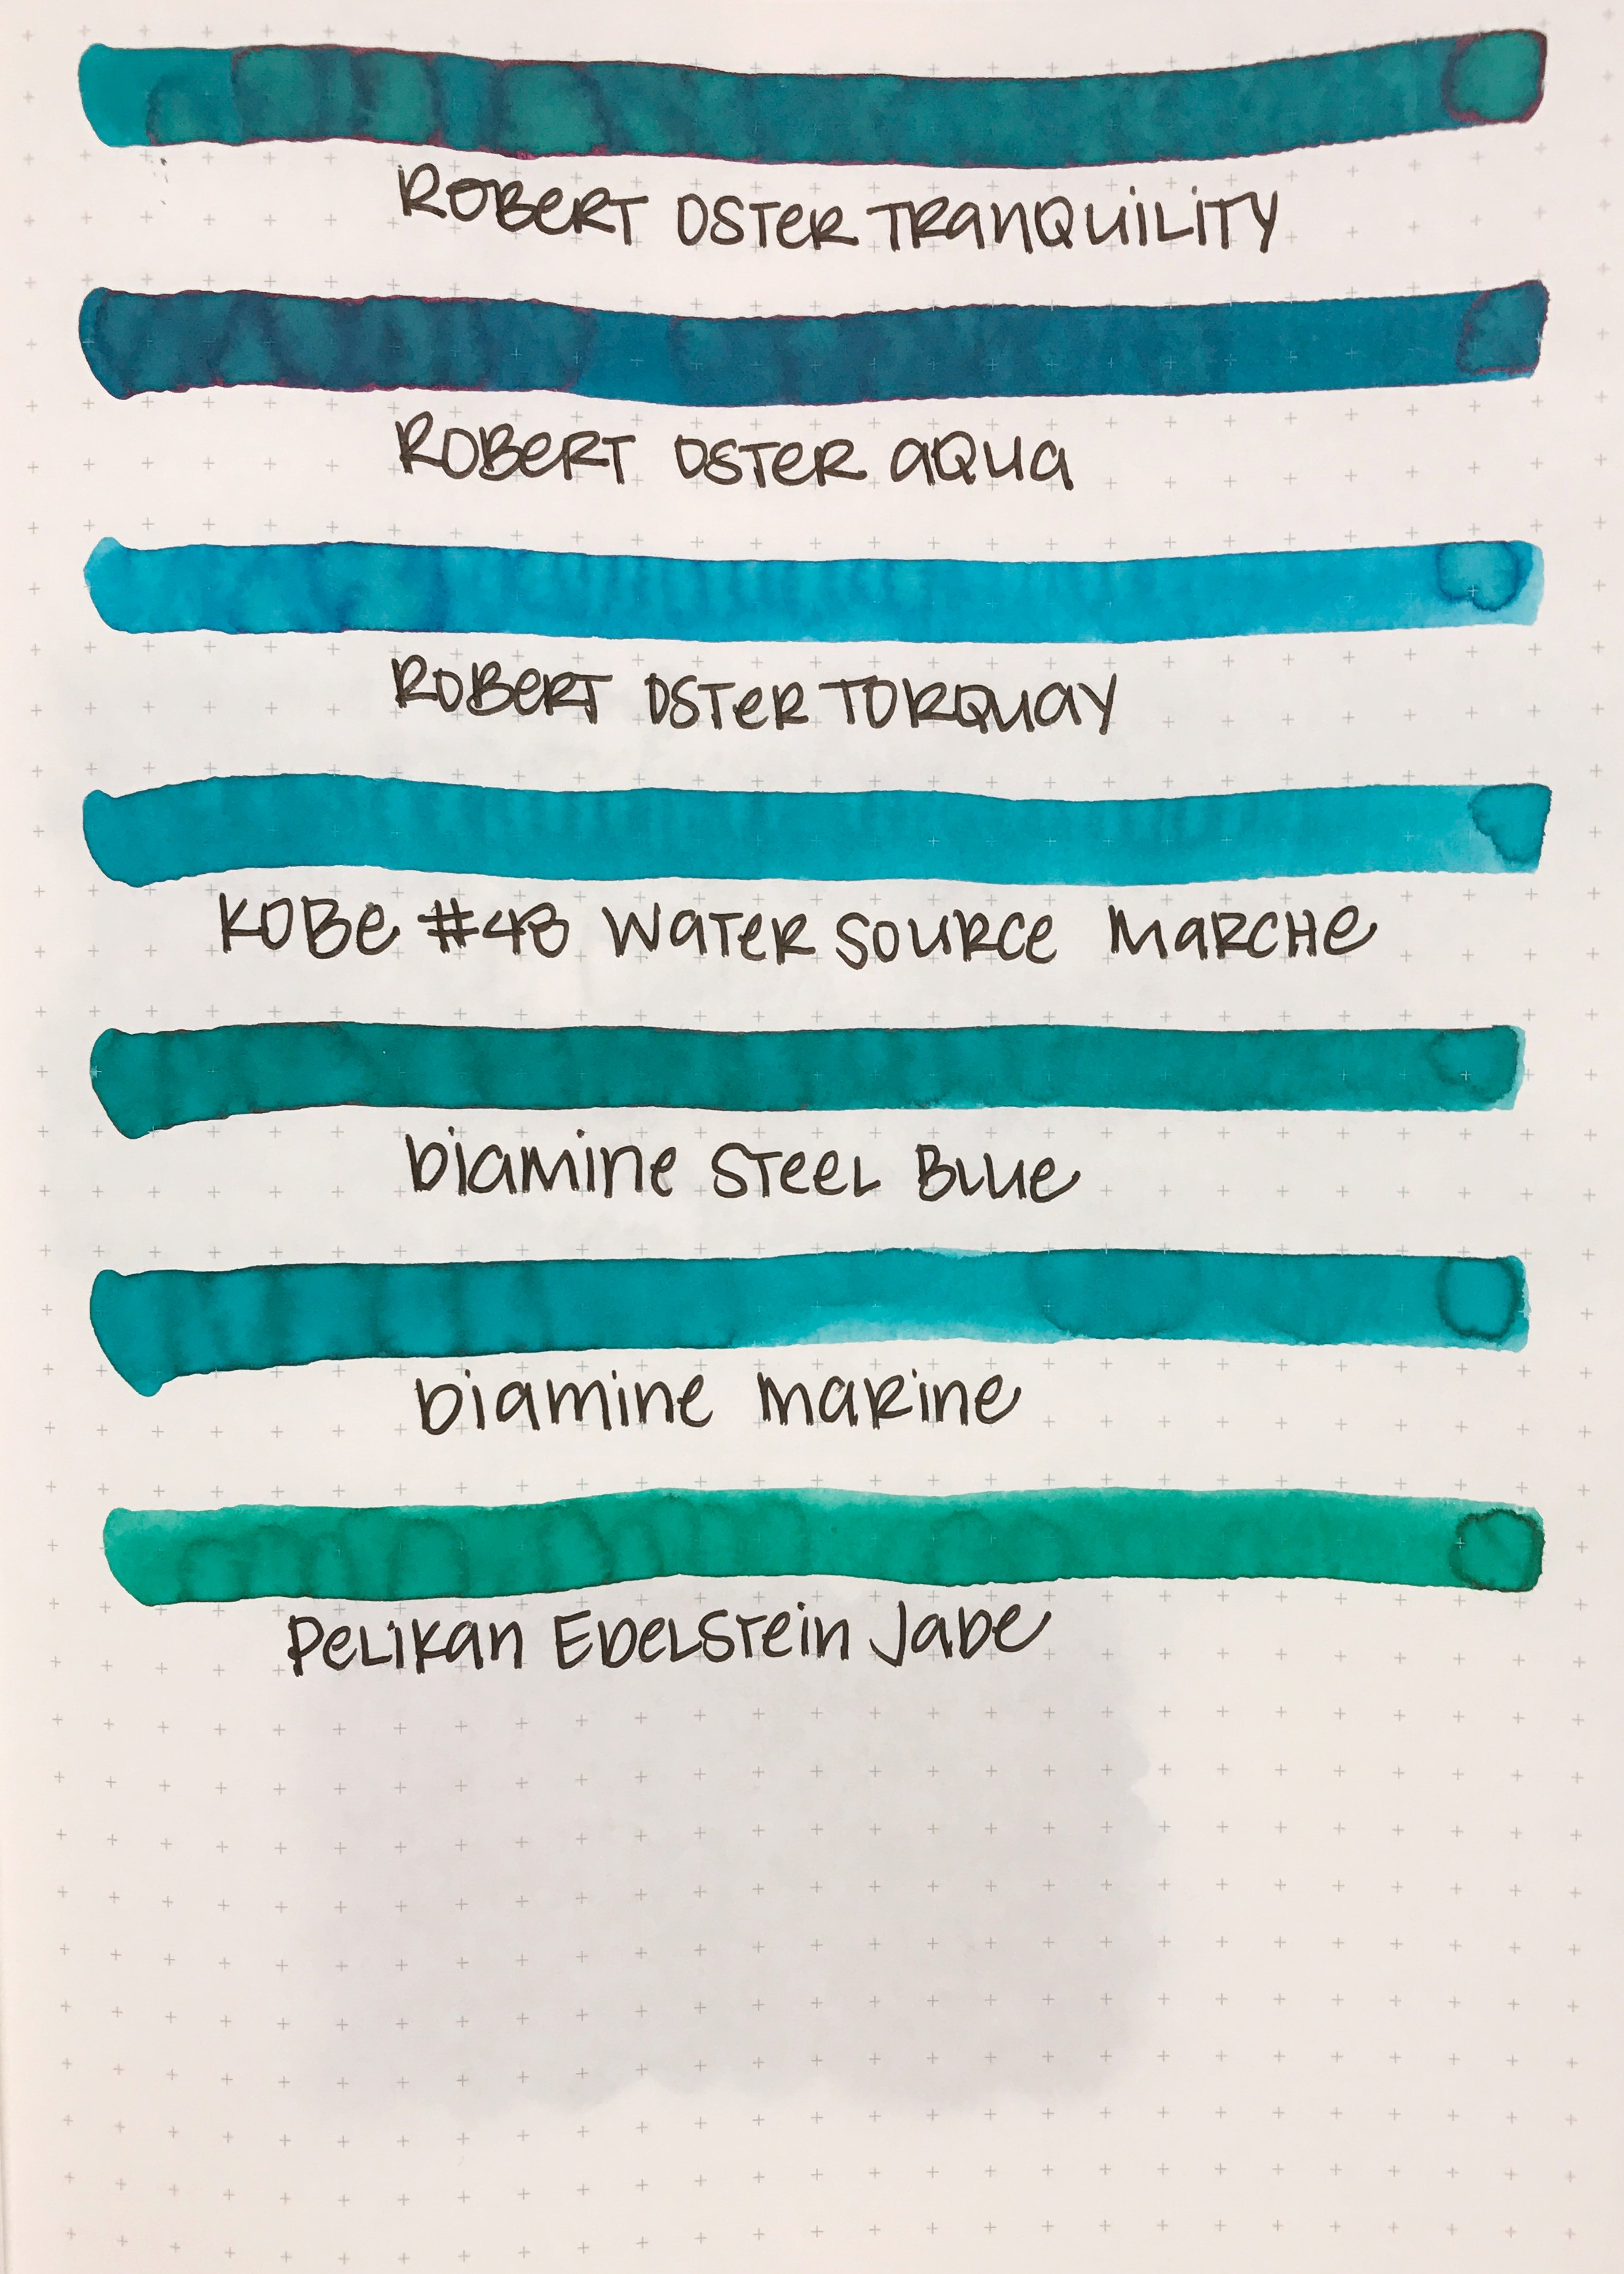 Similar inks... - The closest ink to Tranquility is Diamine Steel Blue.